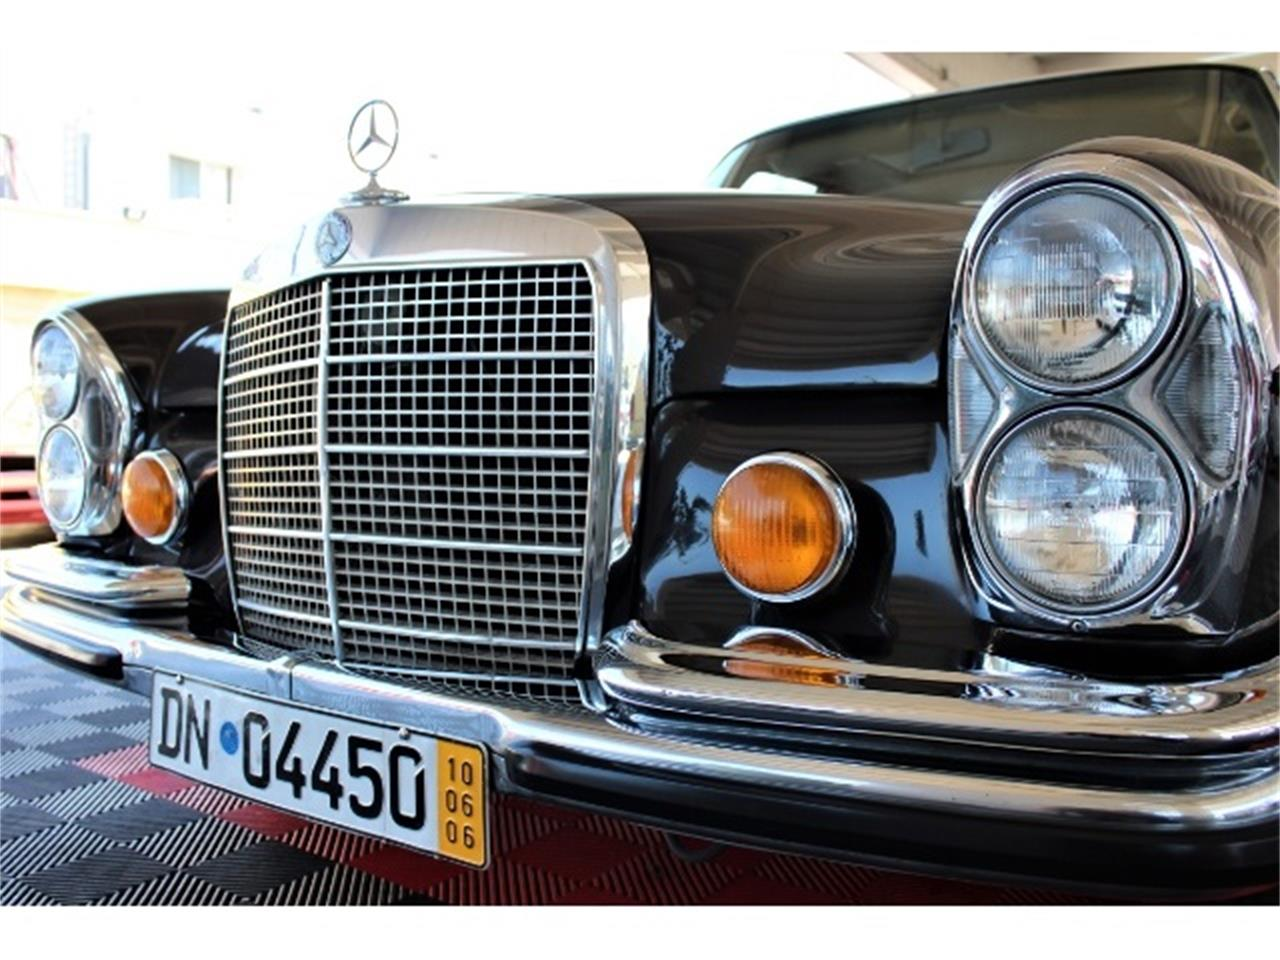 1972 Mercedes-Benz 300SEL for sale in Sherman Oaks, CA – photo 9